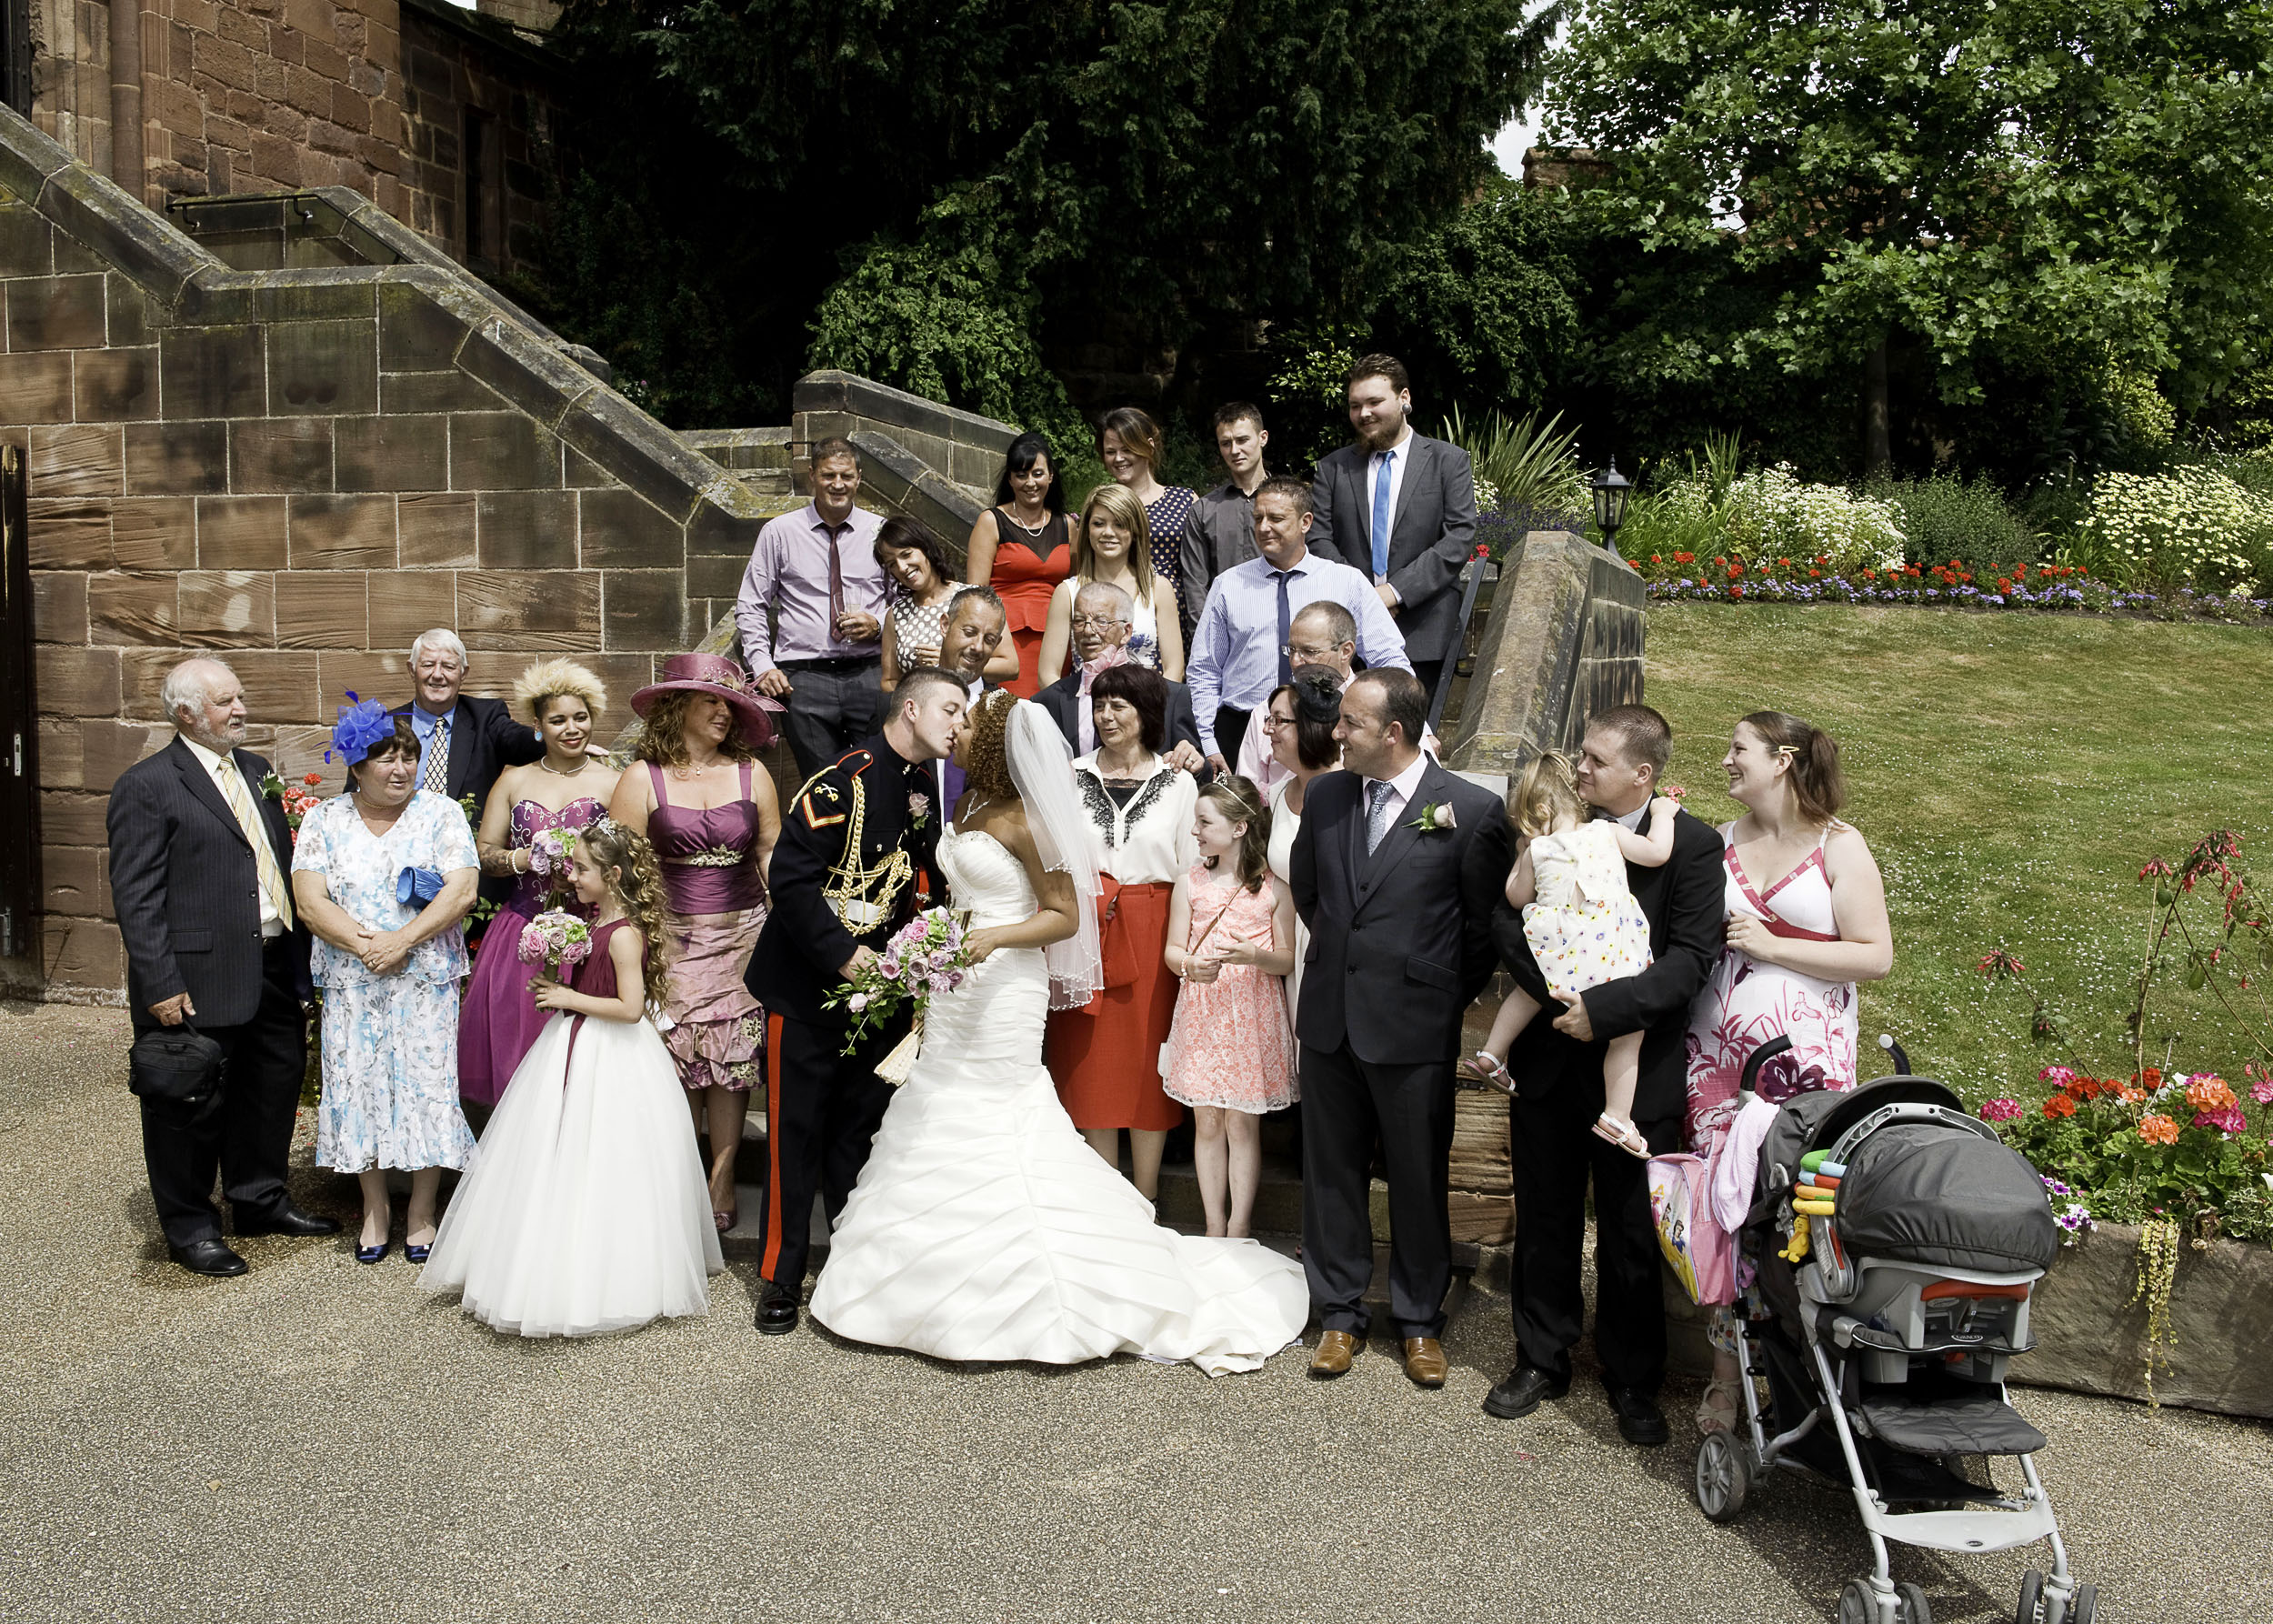 Wonderful wedding at Shrewsbury Castle with a lovely family.